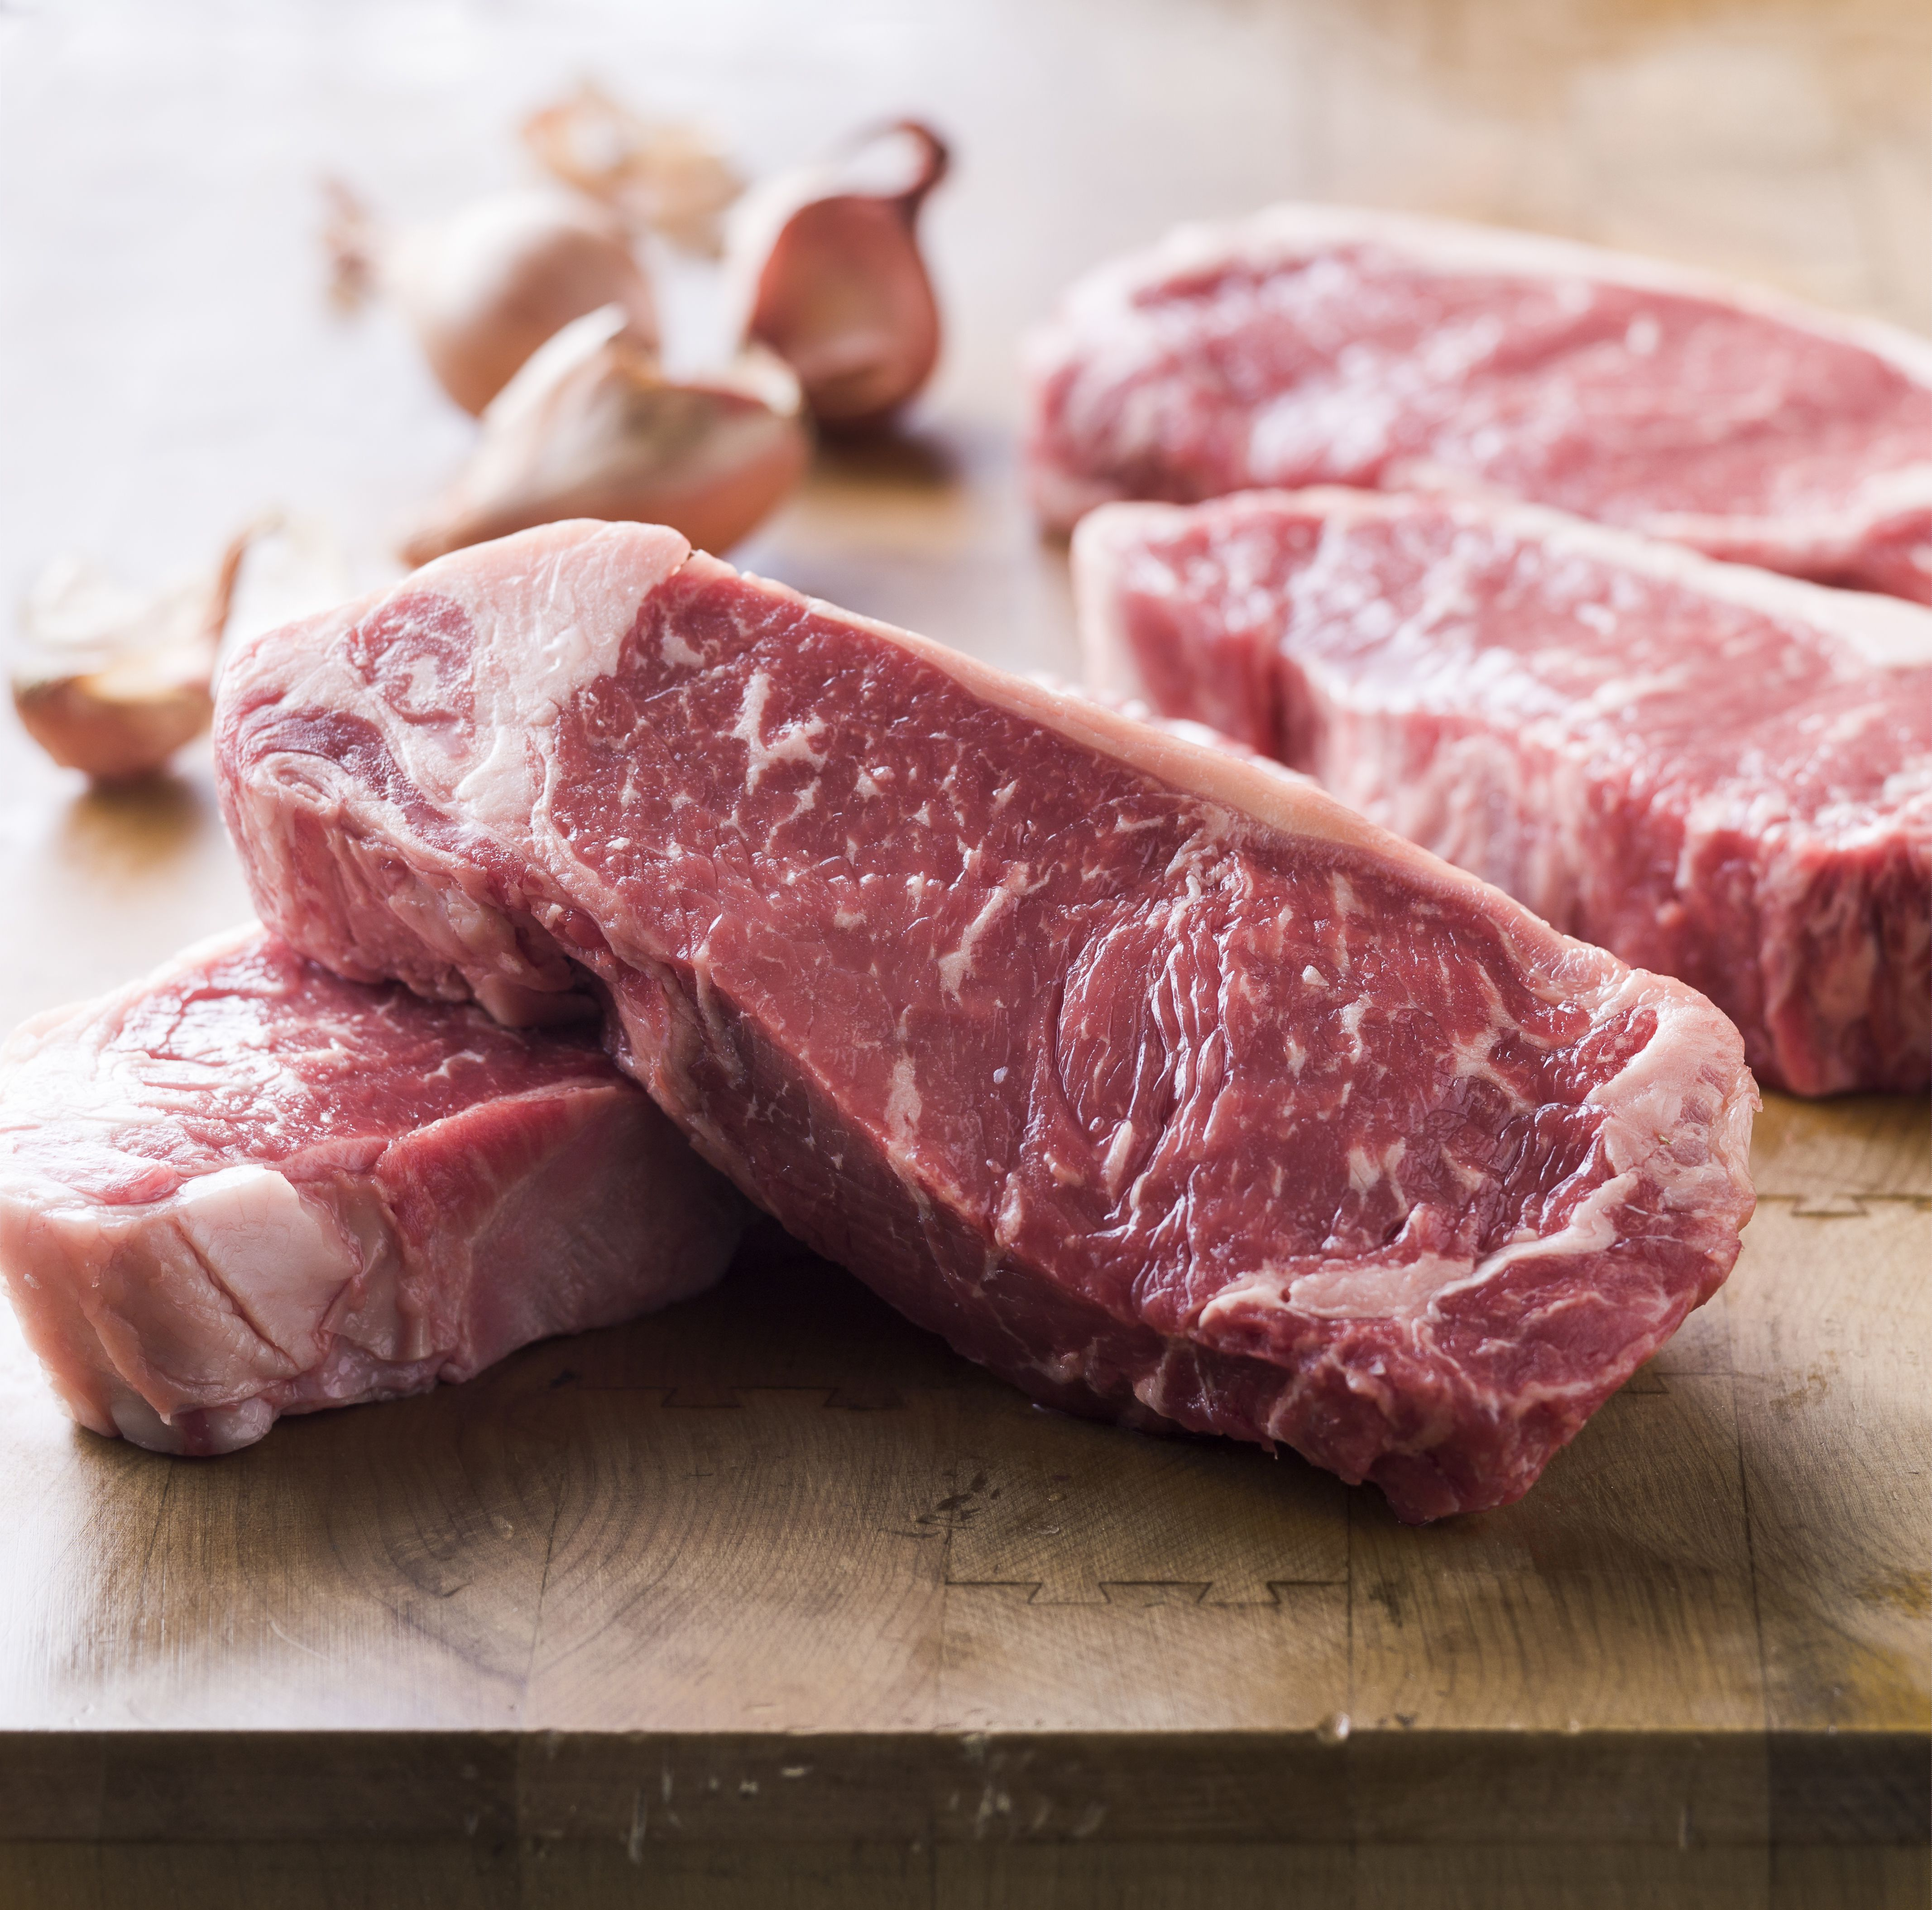 Raw steaks on wooden table